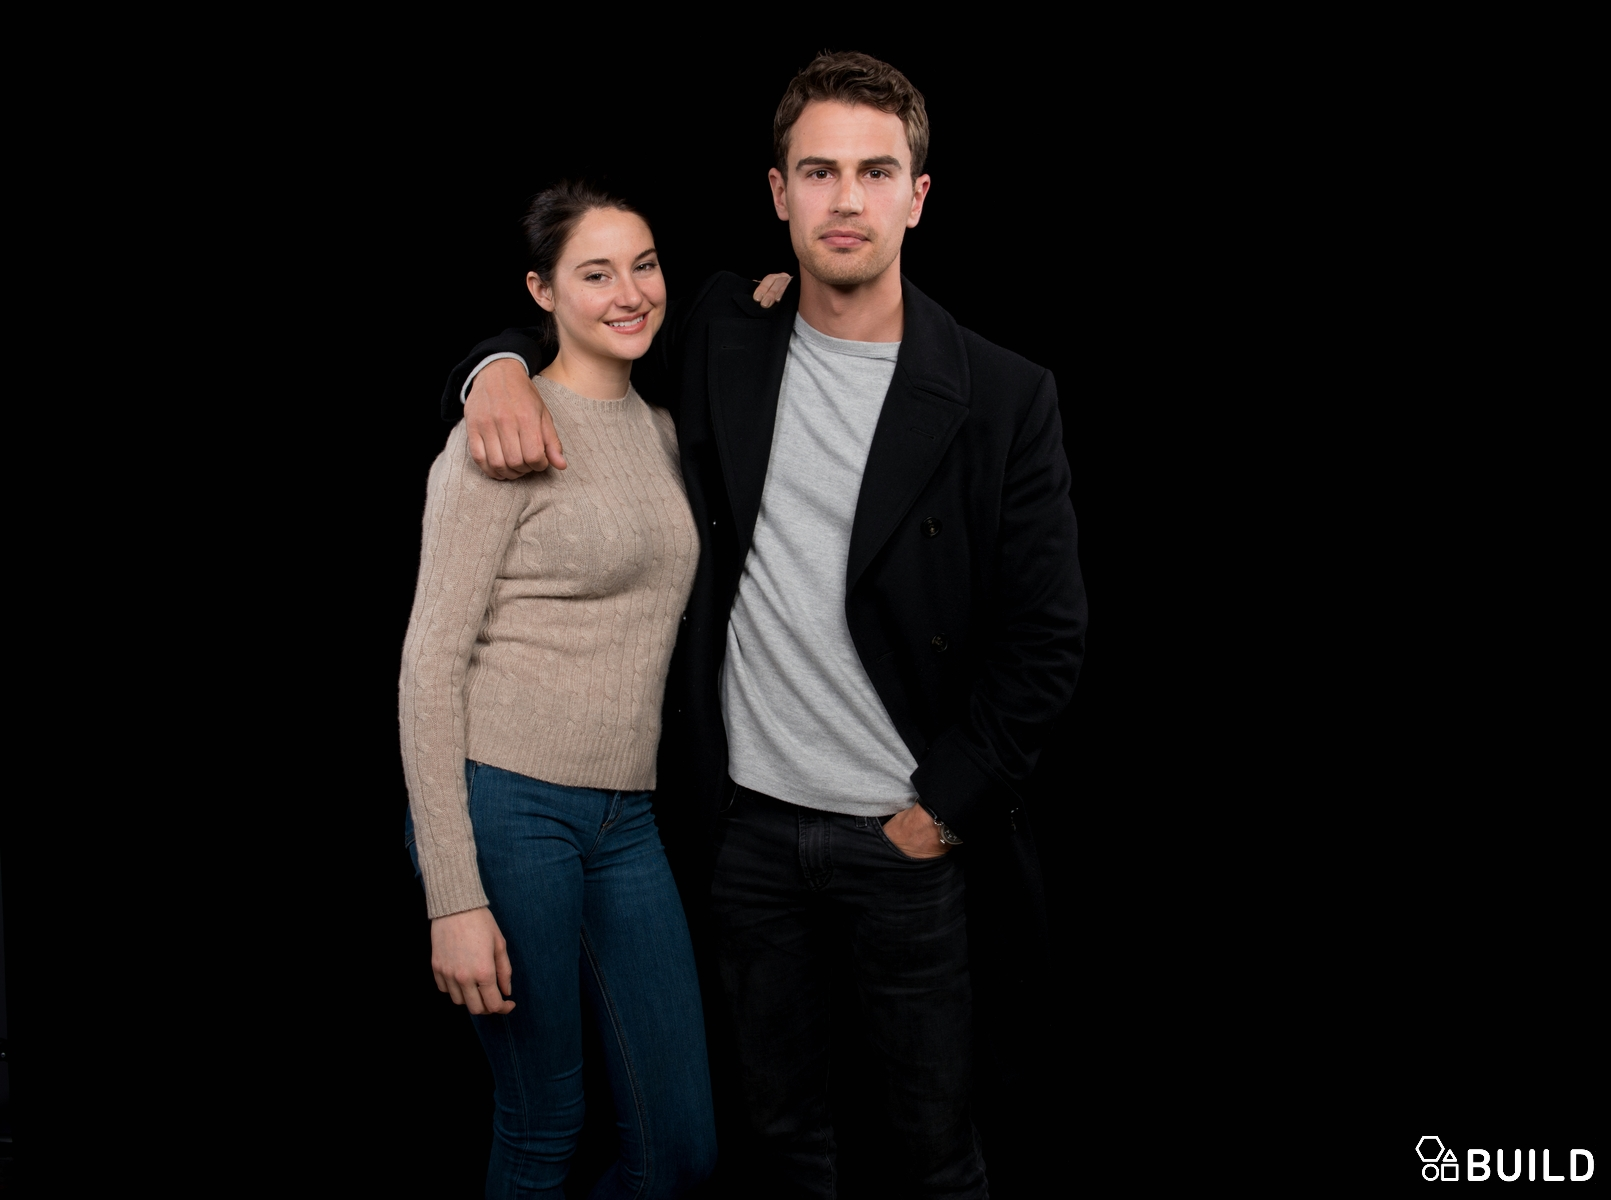 Shailene Woodley and Theo James visits AOL Hq for Build on March 14, 2016 in New York. Photos by Noam Galai